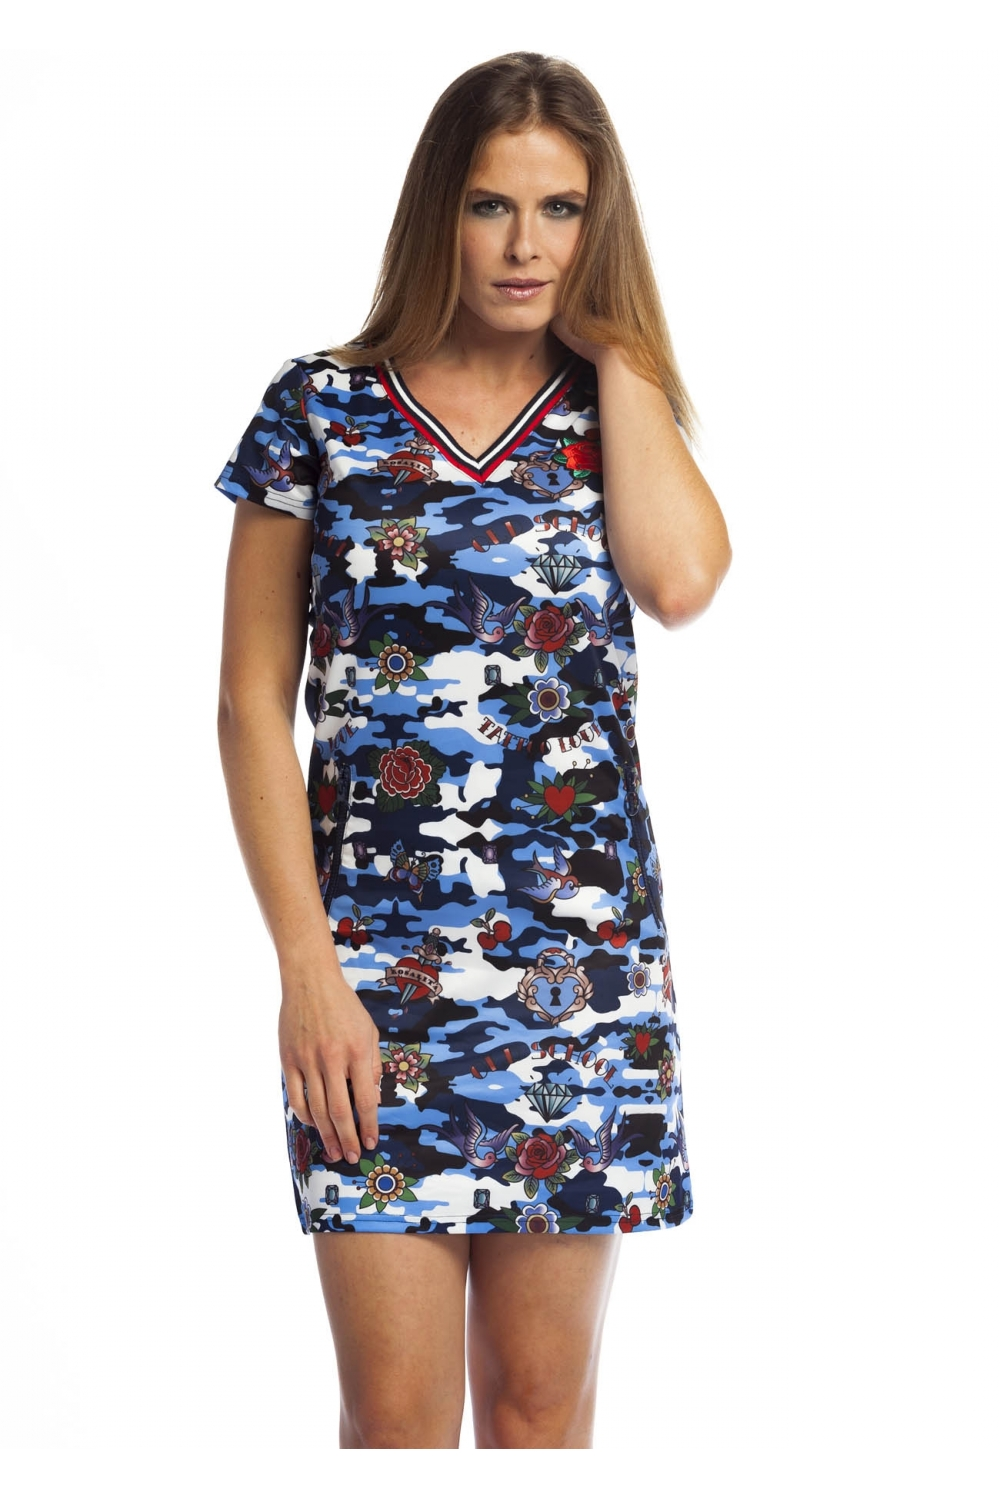 f9c9588cdf62 A-line dress with short sleeves and V-neckline. It has an old school ...